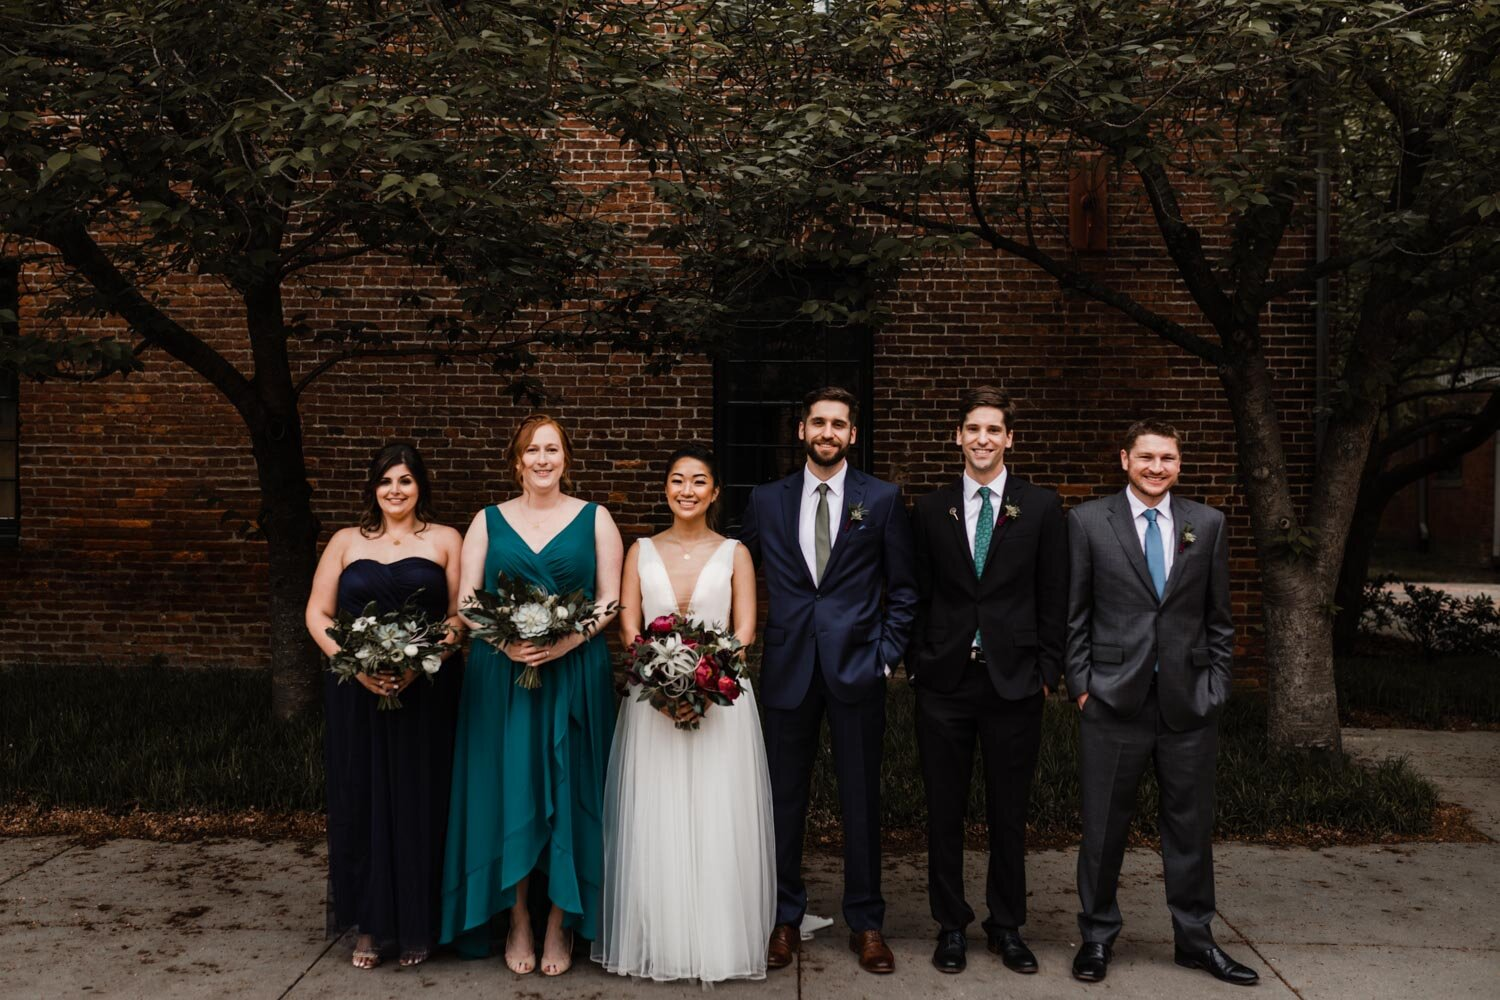 Mt Washington Mill Dye House industrial Baltimore wedding by Barbara O Photography-18.jpg